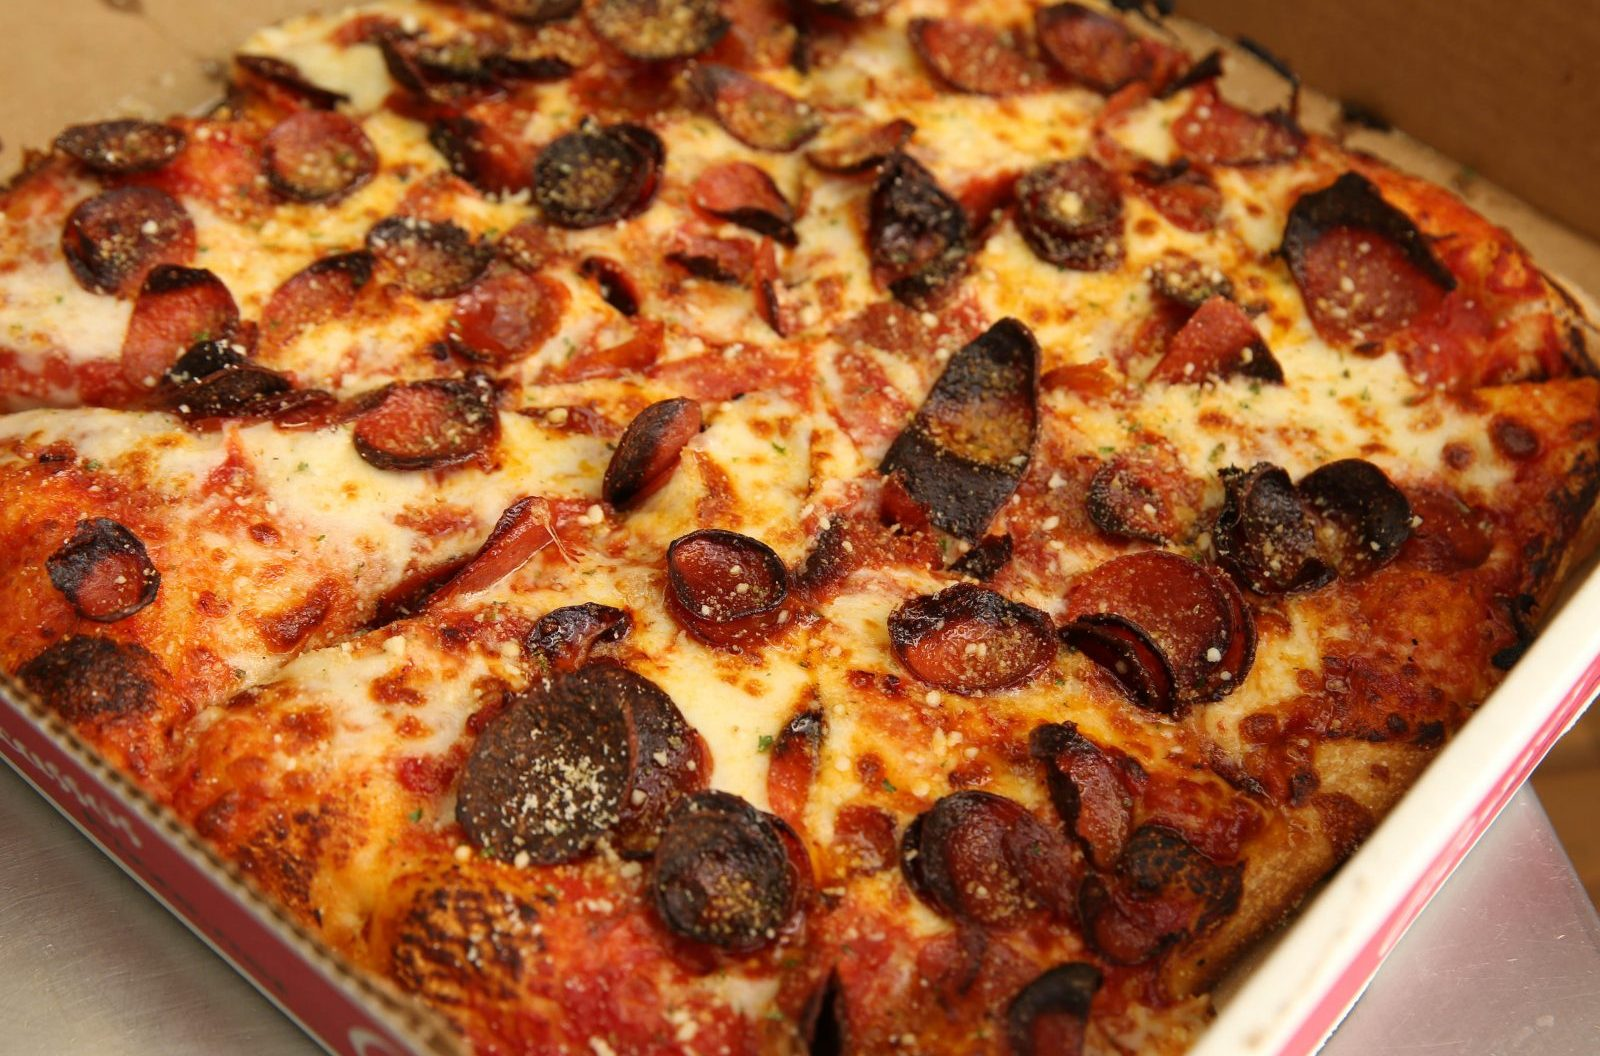 """At Picasso's, pepperoni is cut on a bias and chars up into """"cups"""" on the pizza. Picasso's has four area locations, including 2193 Union Road in West Seneca where this photo was taken.  (Sharon Cantillon/Buffalo News)"""